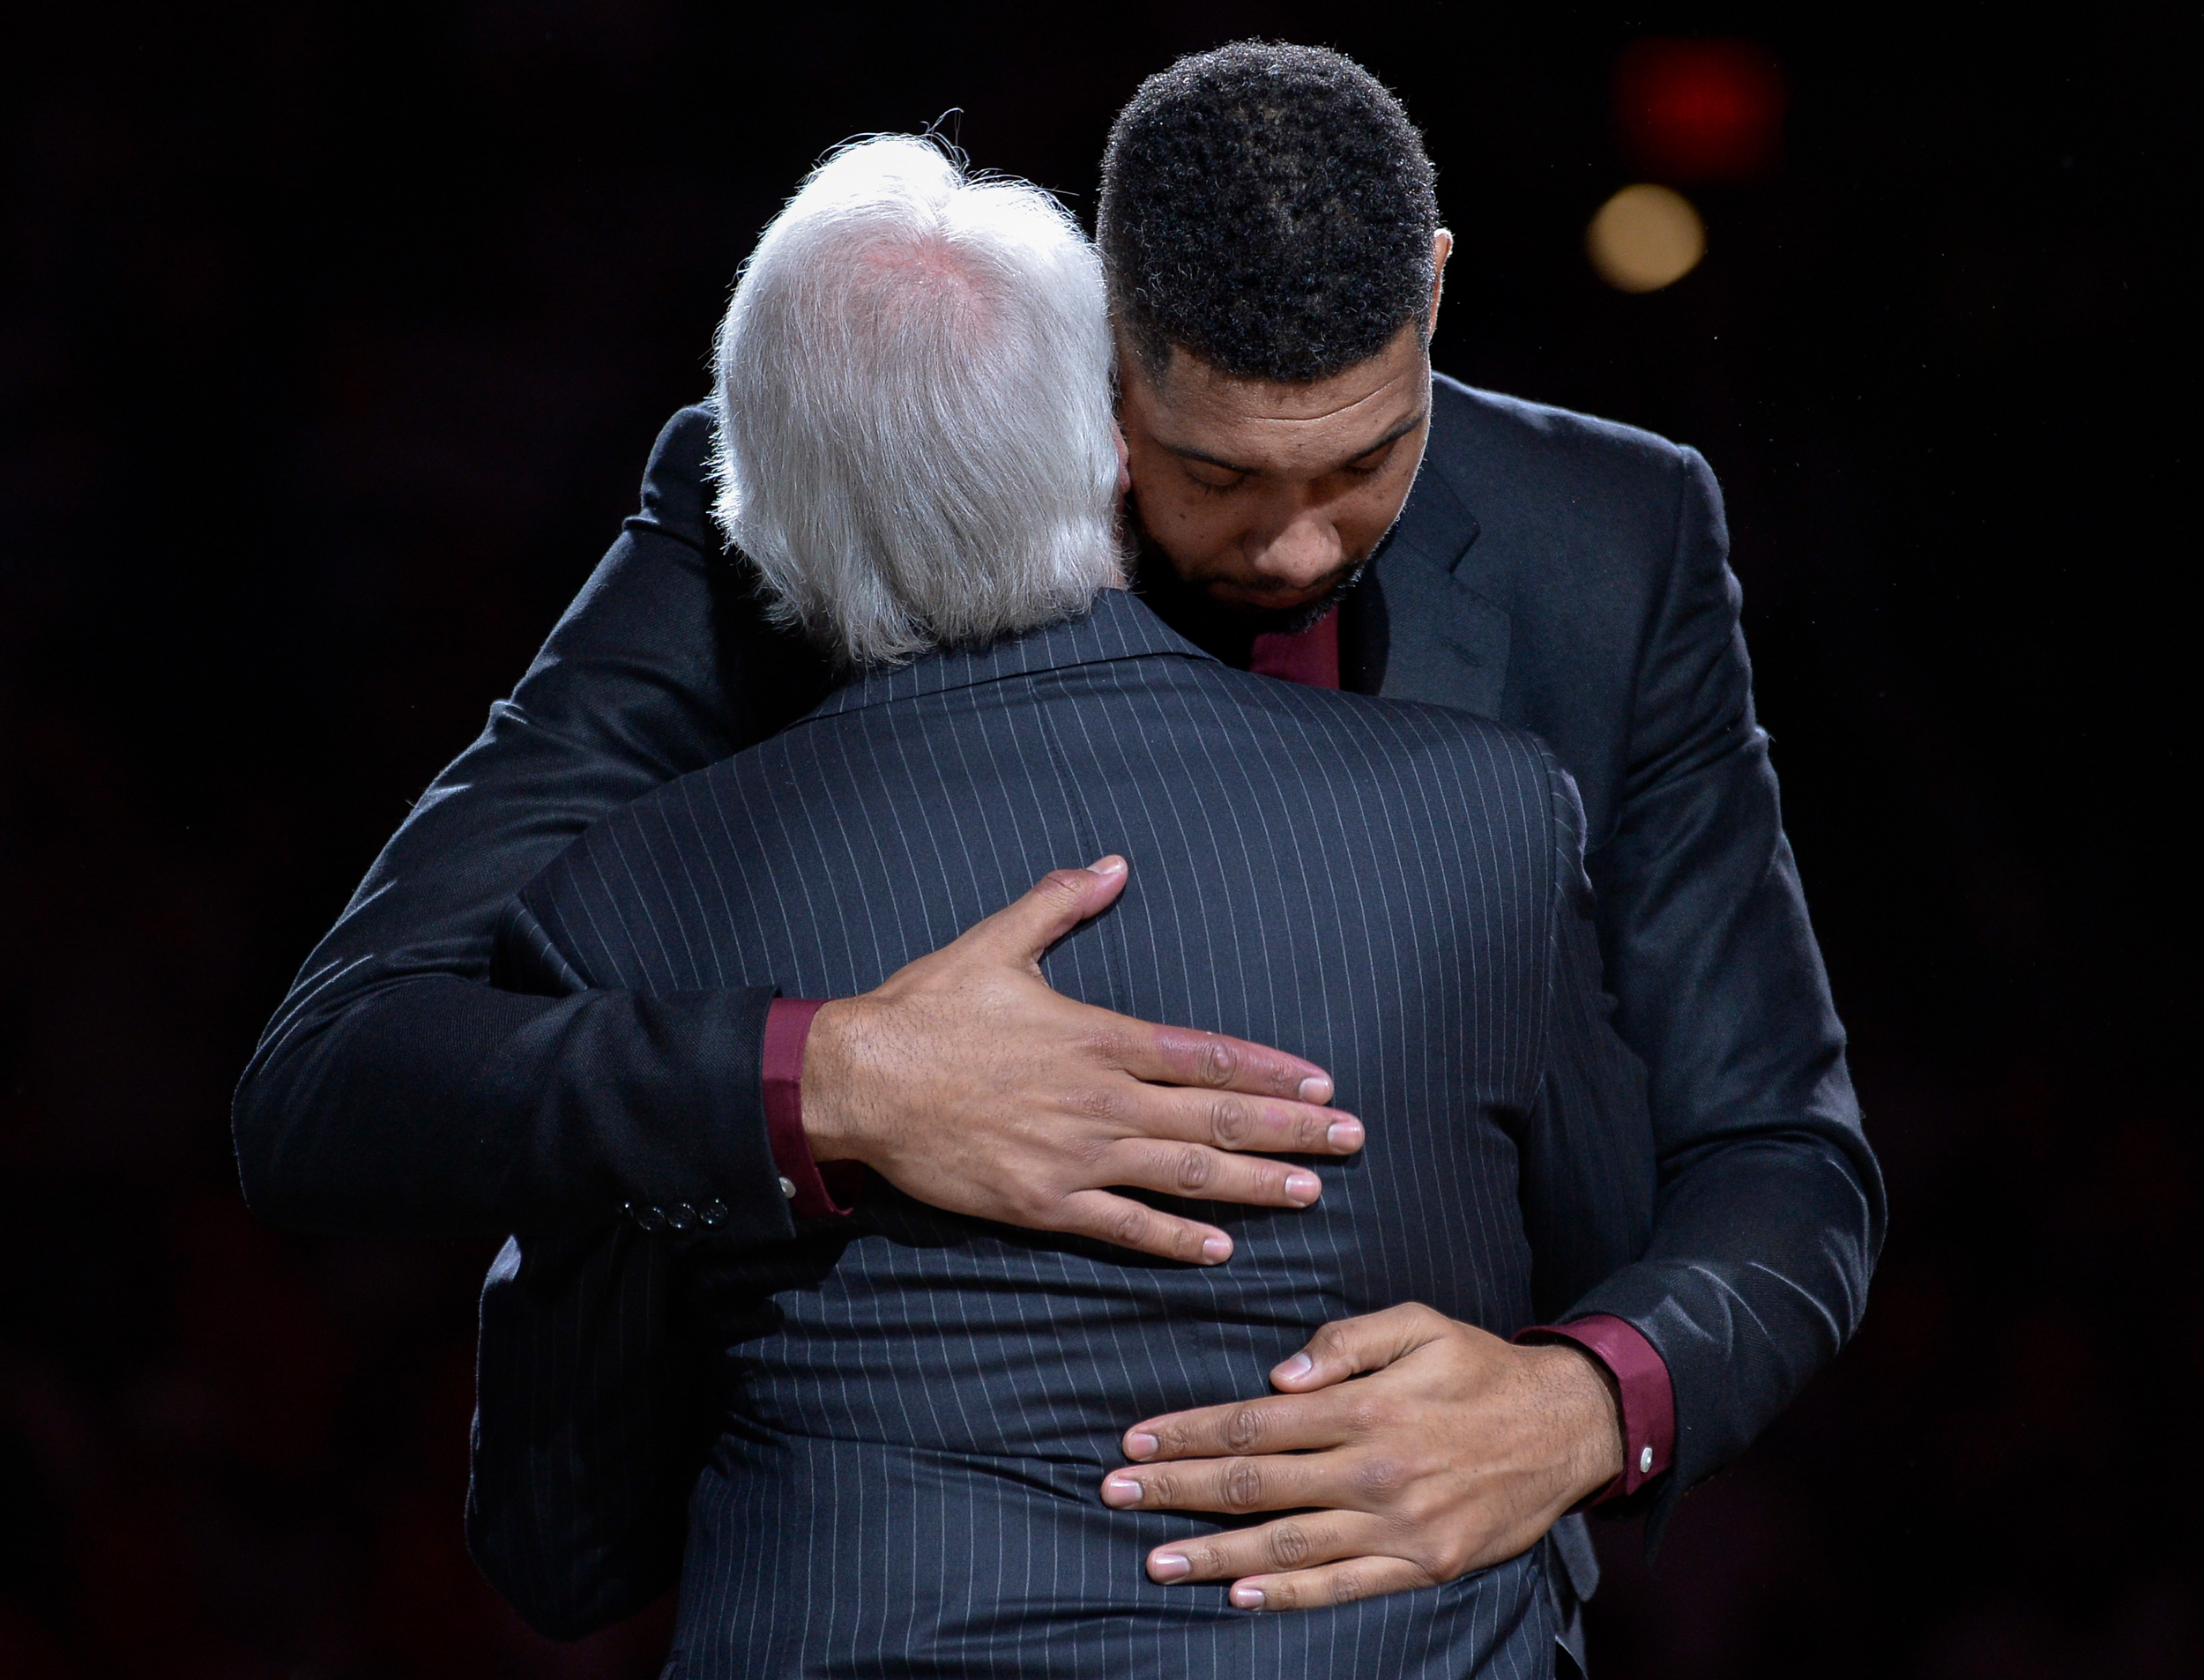 San Antonio Spurs legend Tim Duncan, right, hugs Spurs head coach Gregg Popovich during Duncan's jersey retirement ceremony, Sunday, Dec. 18, 2016, in San Antonio.